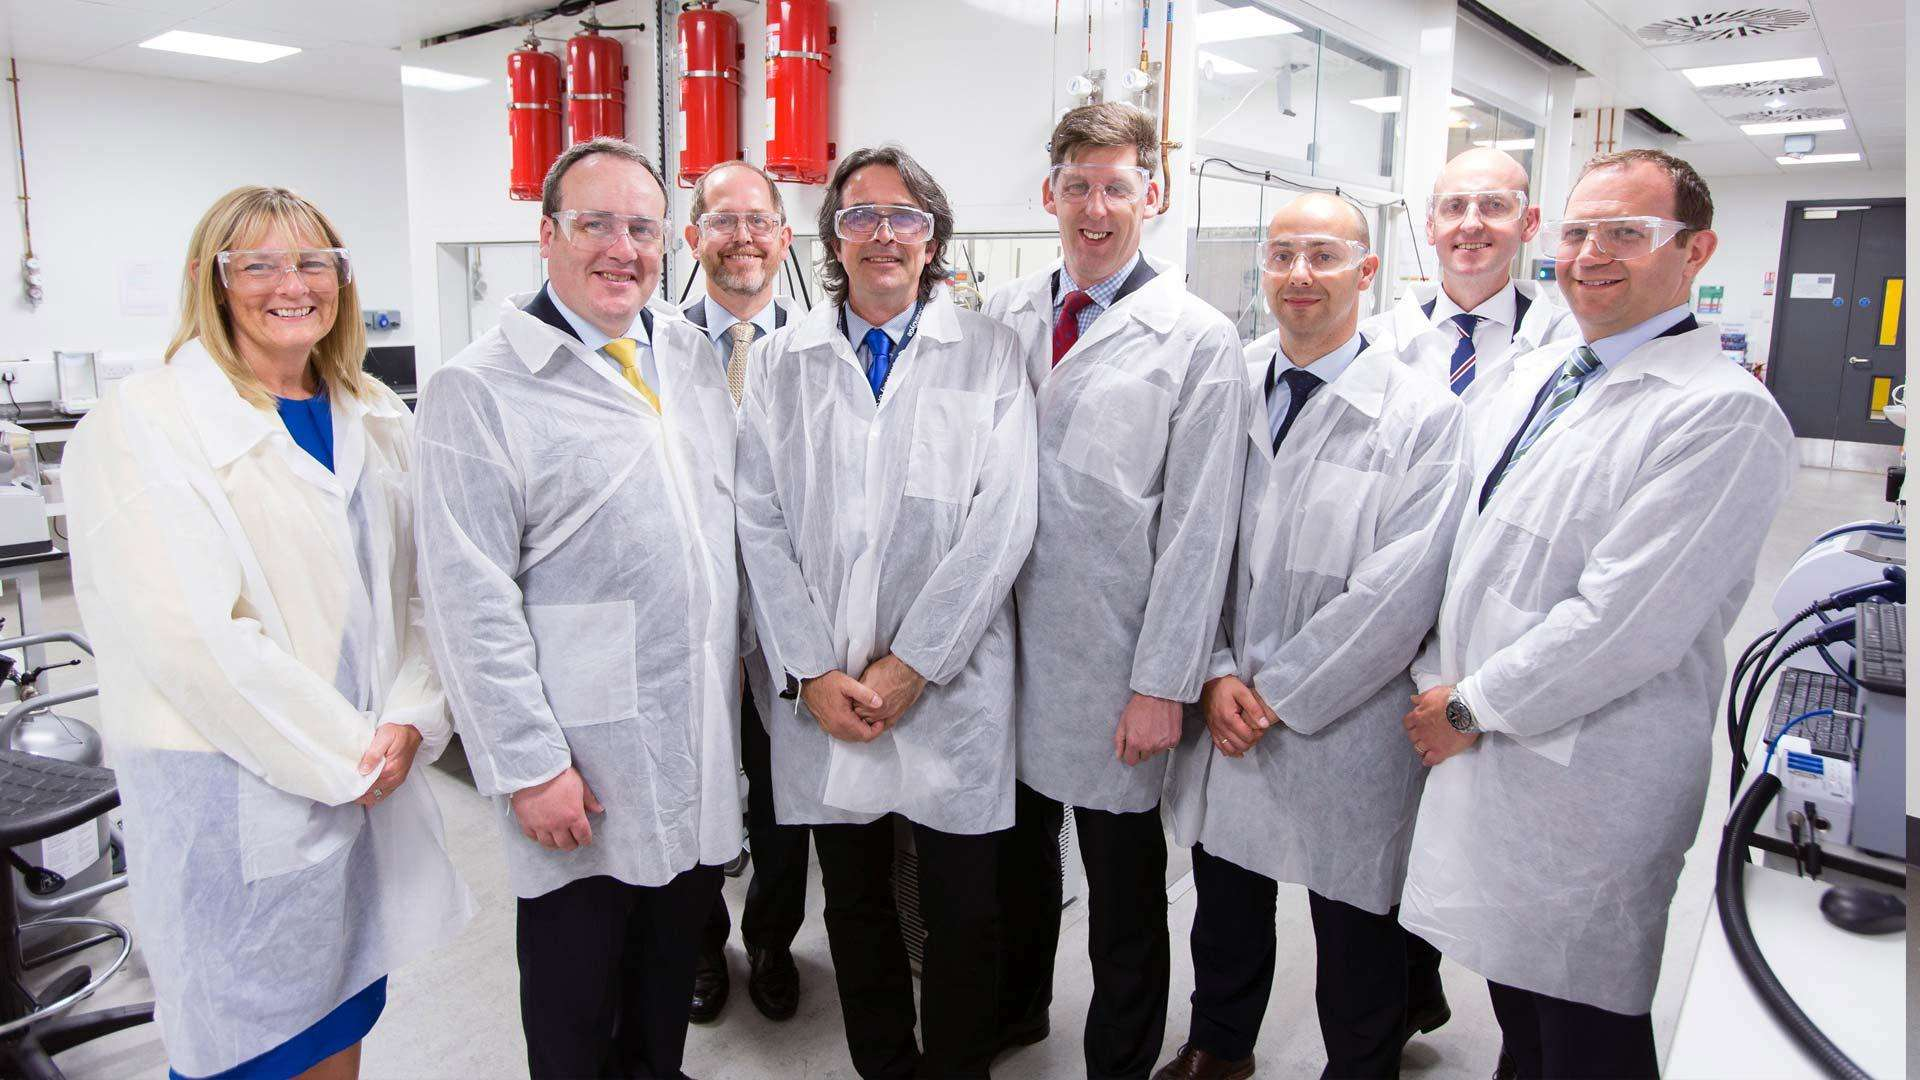 A photo of the people involved in the creation of the Medicines Manufacturing Innovation Centre